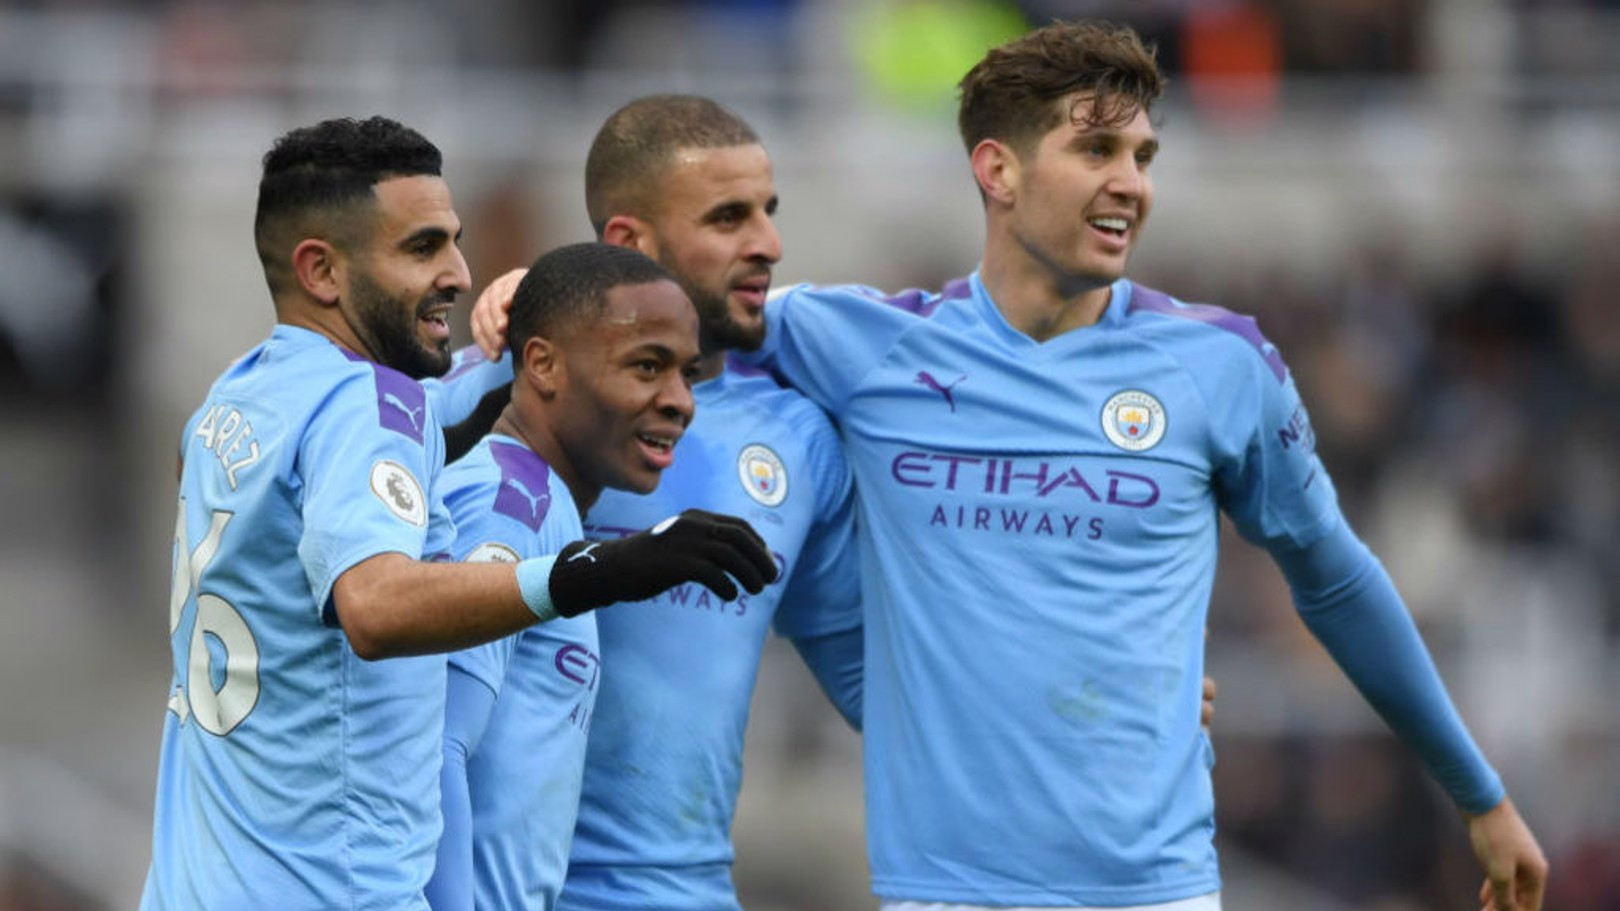 GET IN: The lads congratulate Raheem